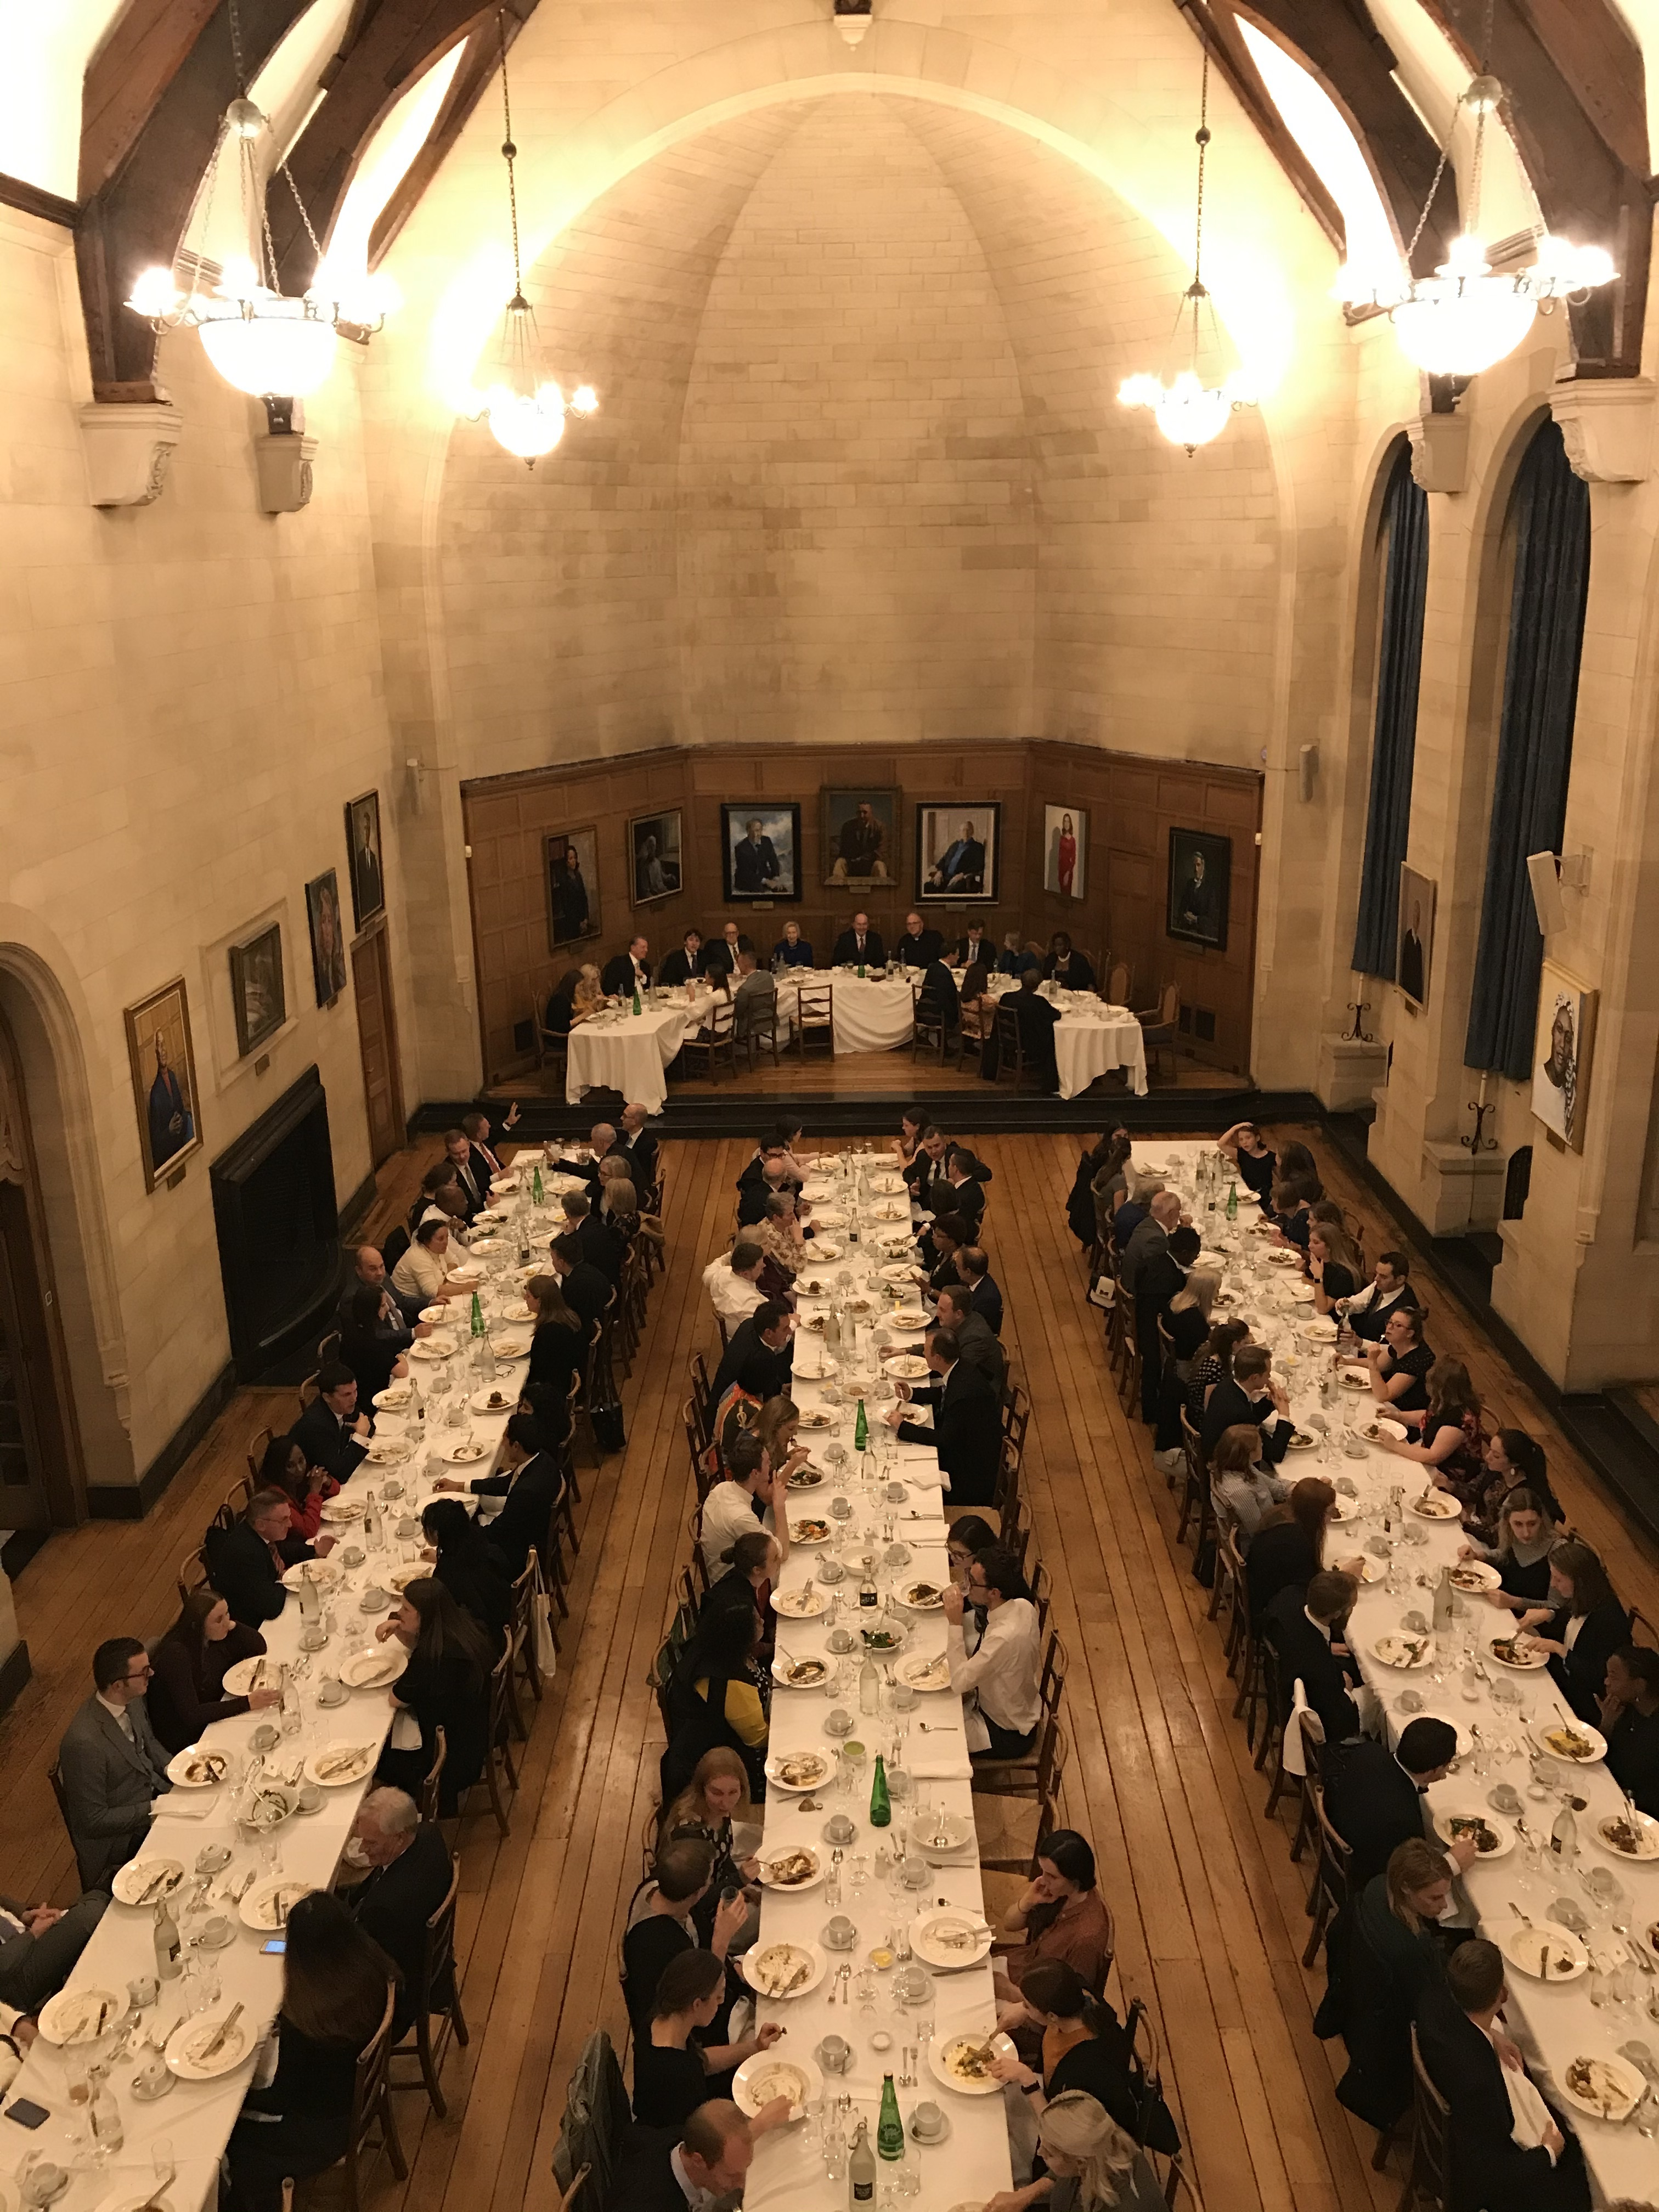 """Elder Quentin L. Cook and his wife, Sister Mary Cook, participate in a dinner held Milner Hall in the Rhodes House. The dinner followed a U.S. Constitutional event titled """"Religious Freedom, the U.S. Constitution, and the American Founding"""" held at Pembroke College, Oxford, during which Elder Cook gave the keynote address."""